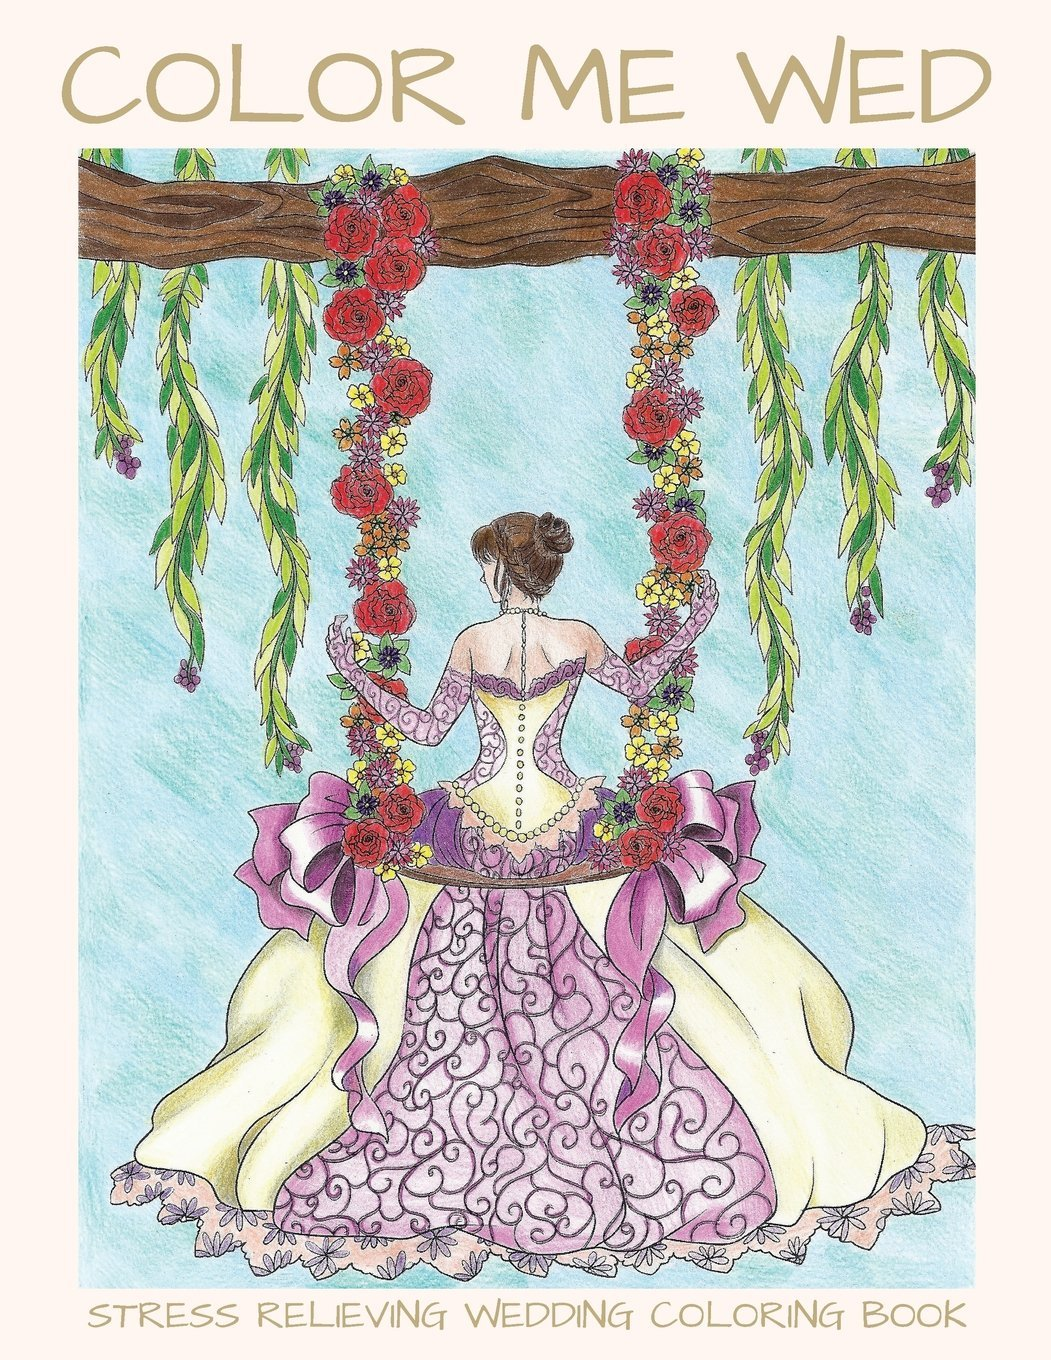 Amazon.com: Color Me Wed: Stress Relieving Wedding Coloring Book ...